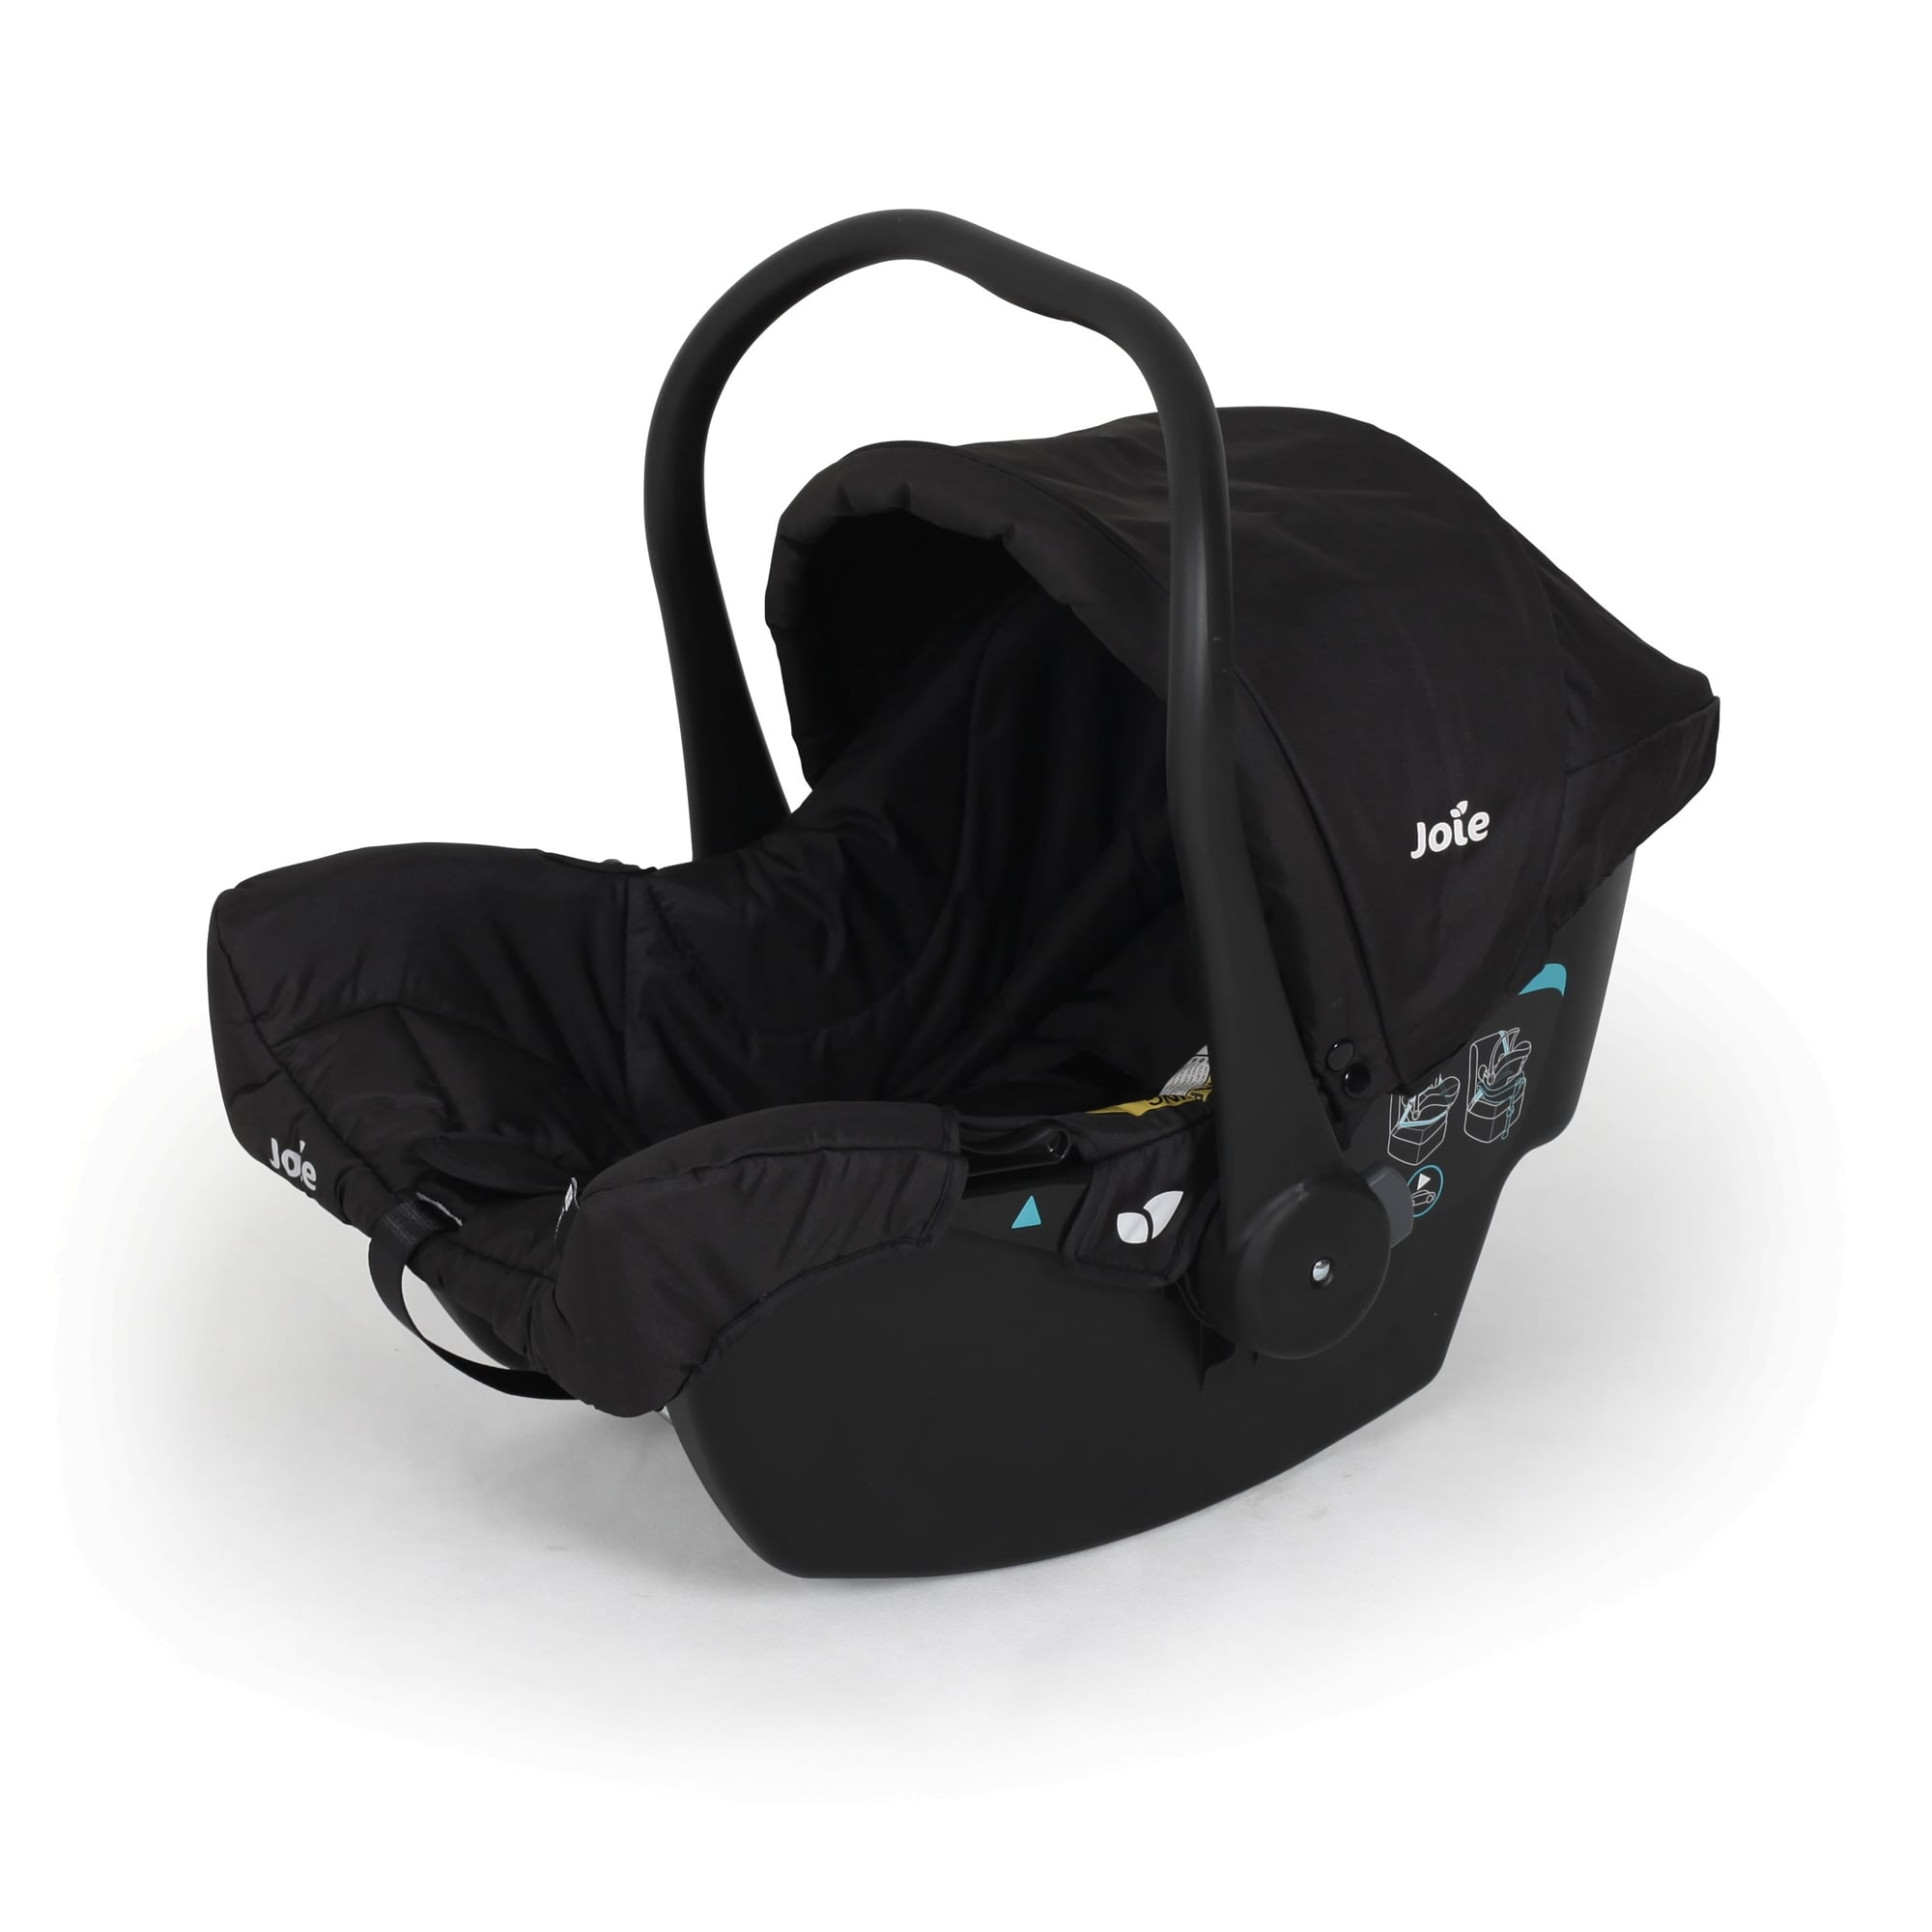 Joie Baby Car Seat Usa Joie Juva Classic Car Seat Black Ink